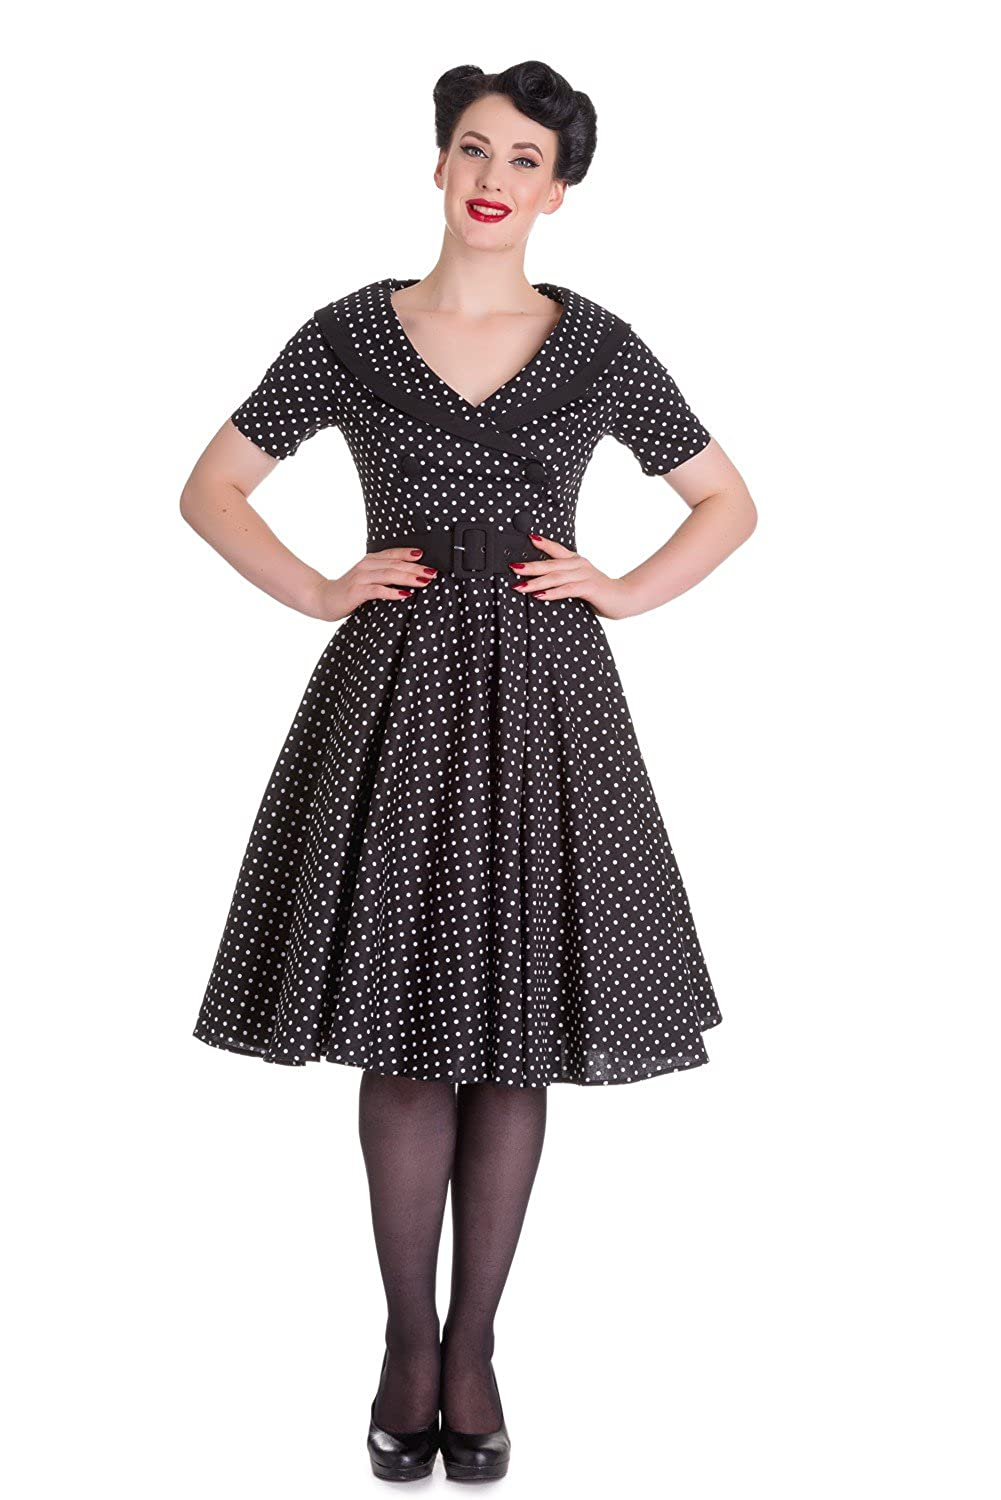 Hell Bunny Mimi 50s retro Pin Up Polka Dots Rockabilly Swing Dress Petticoat kurzarm Kleid